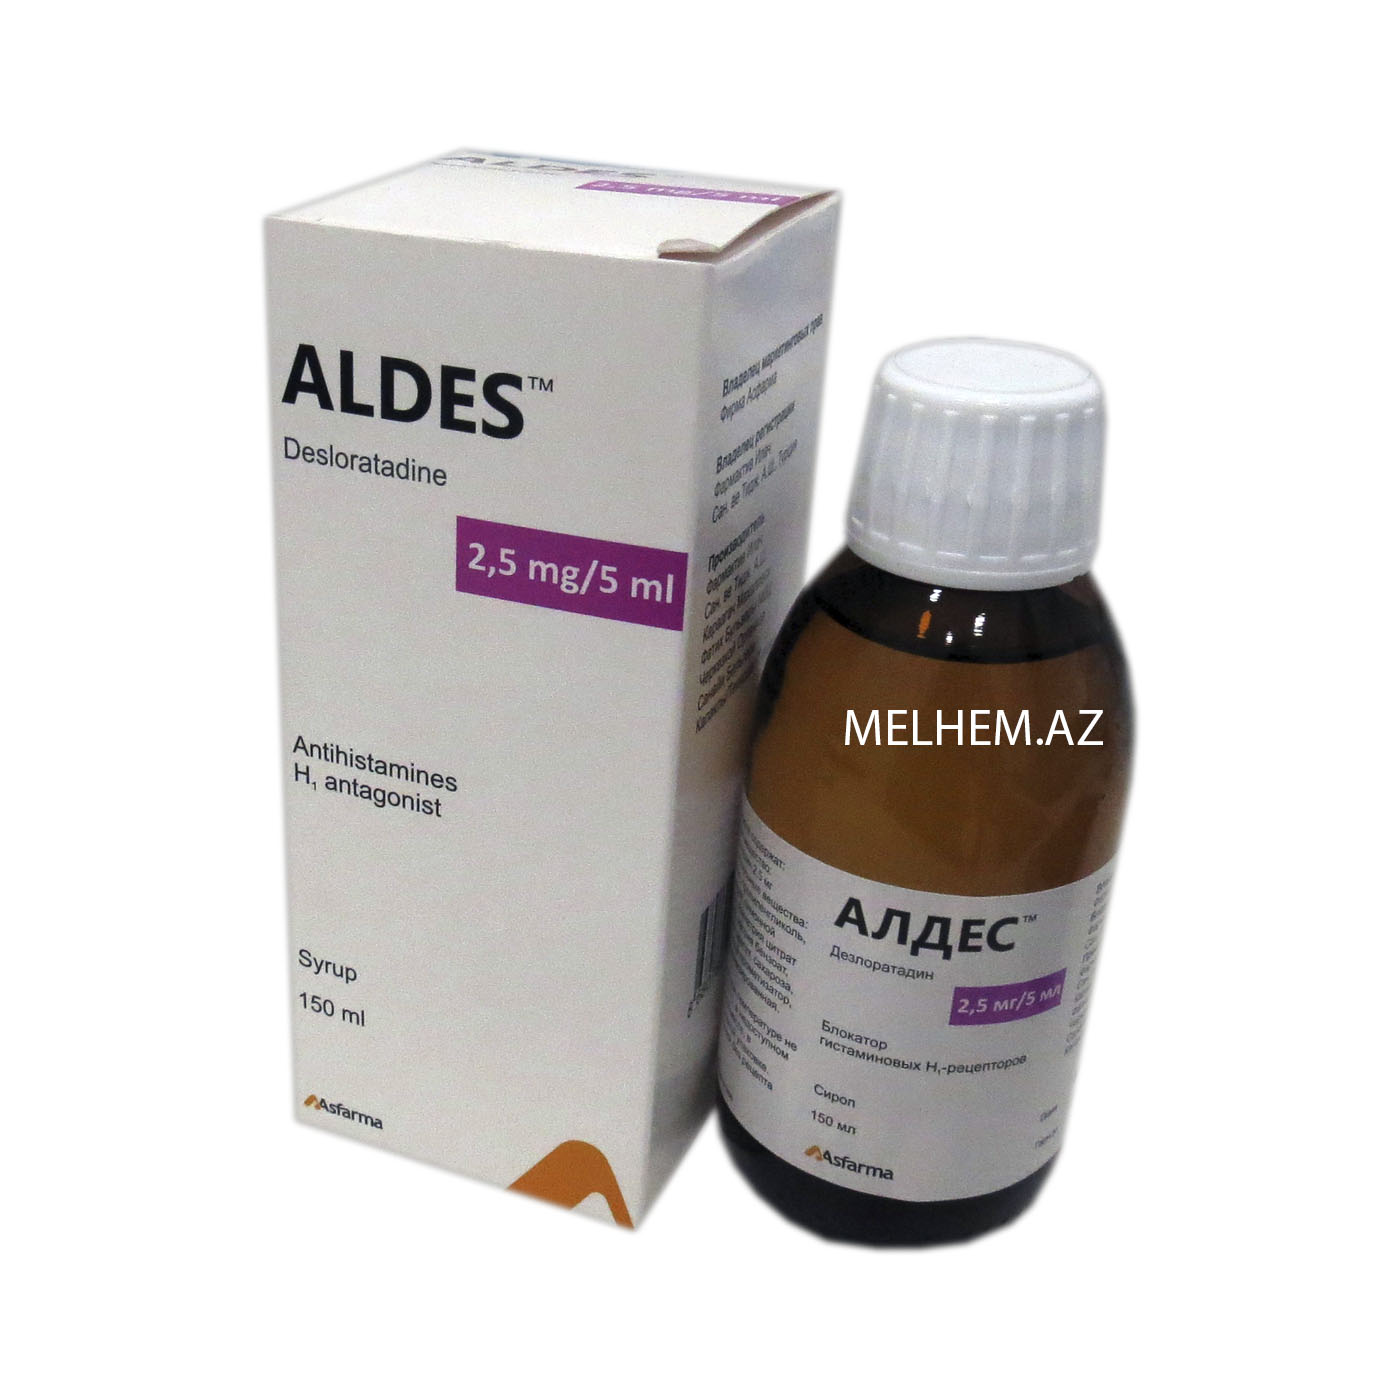 ALDES 2,5 MG/ 5 ML